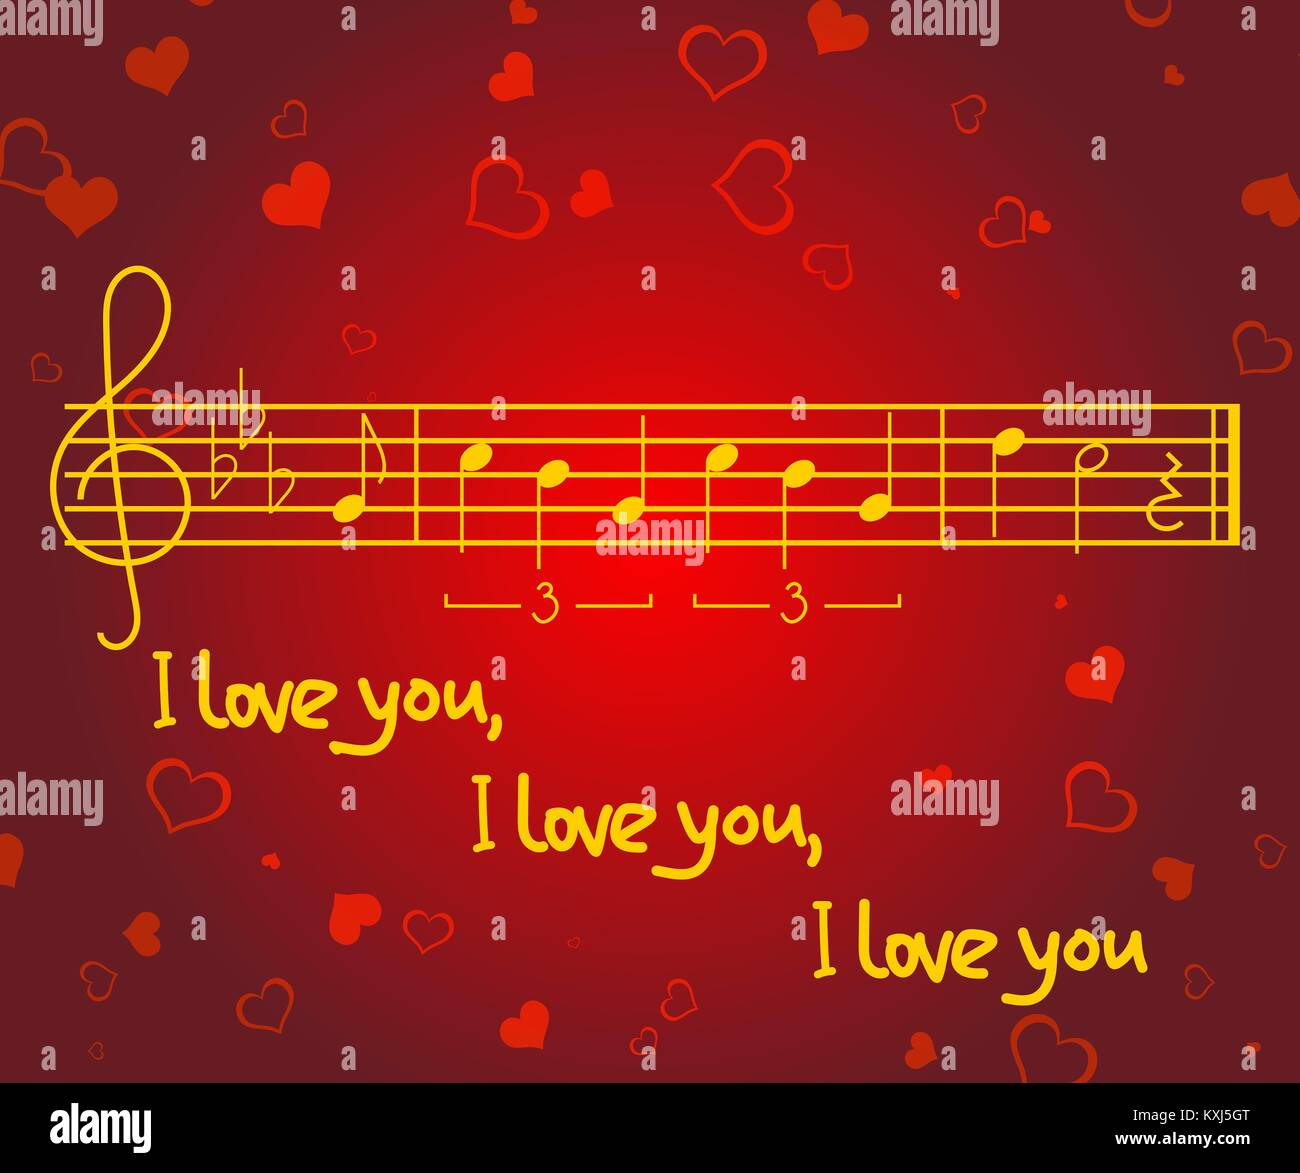 Romantic greeting card for valentines day with heart shapes music romantic greeting card for valentines day with heart shapes music notes of the song michelle and words i love you vector illustration m4hsunfo